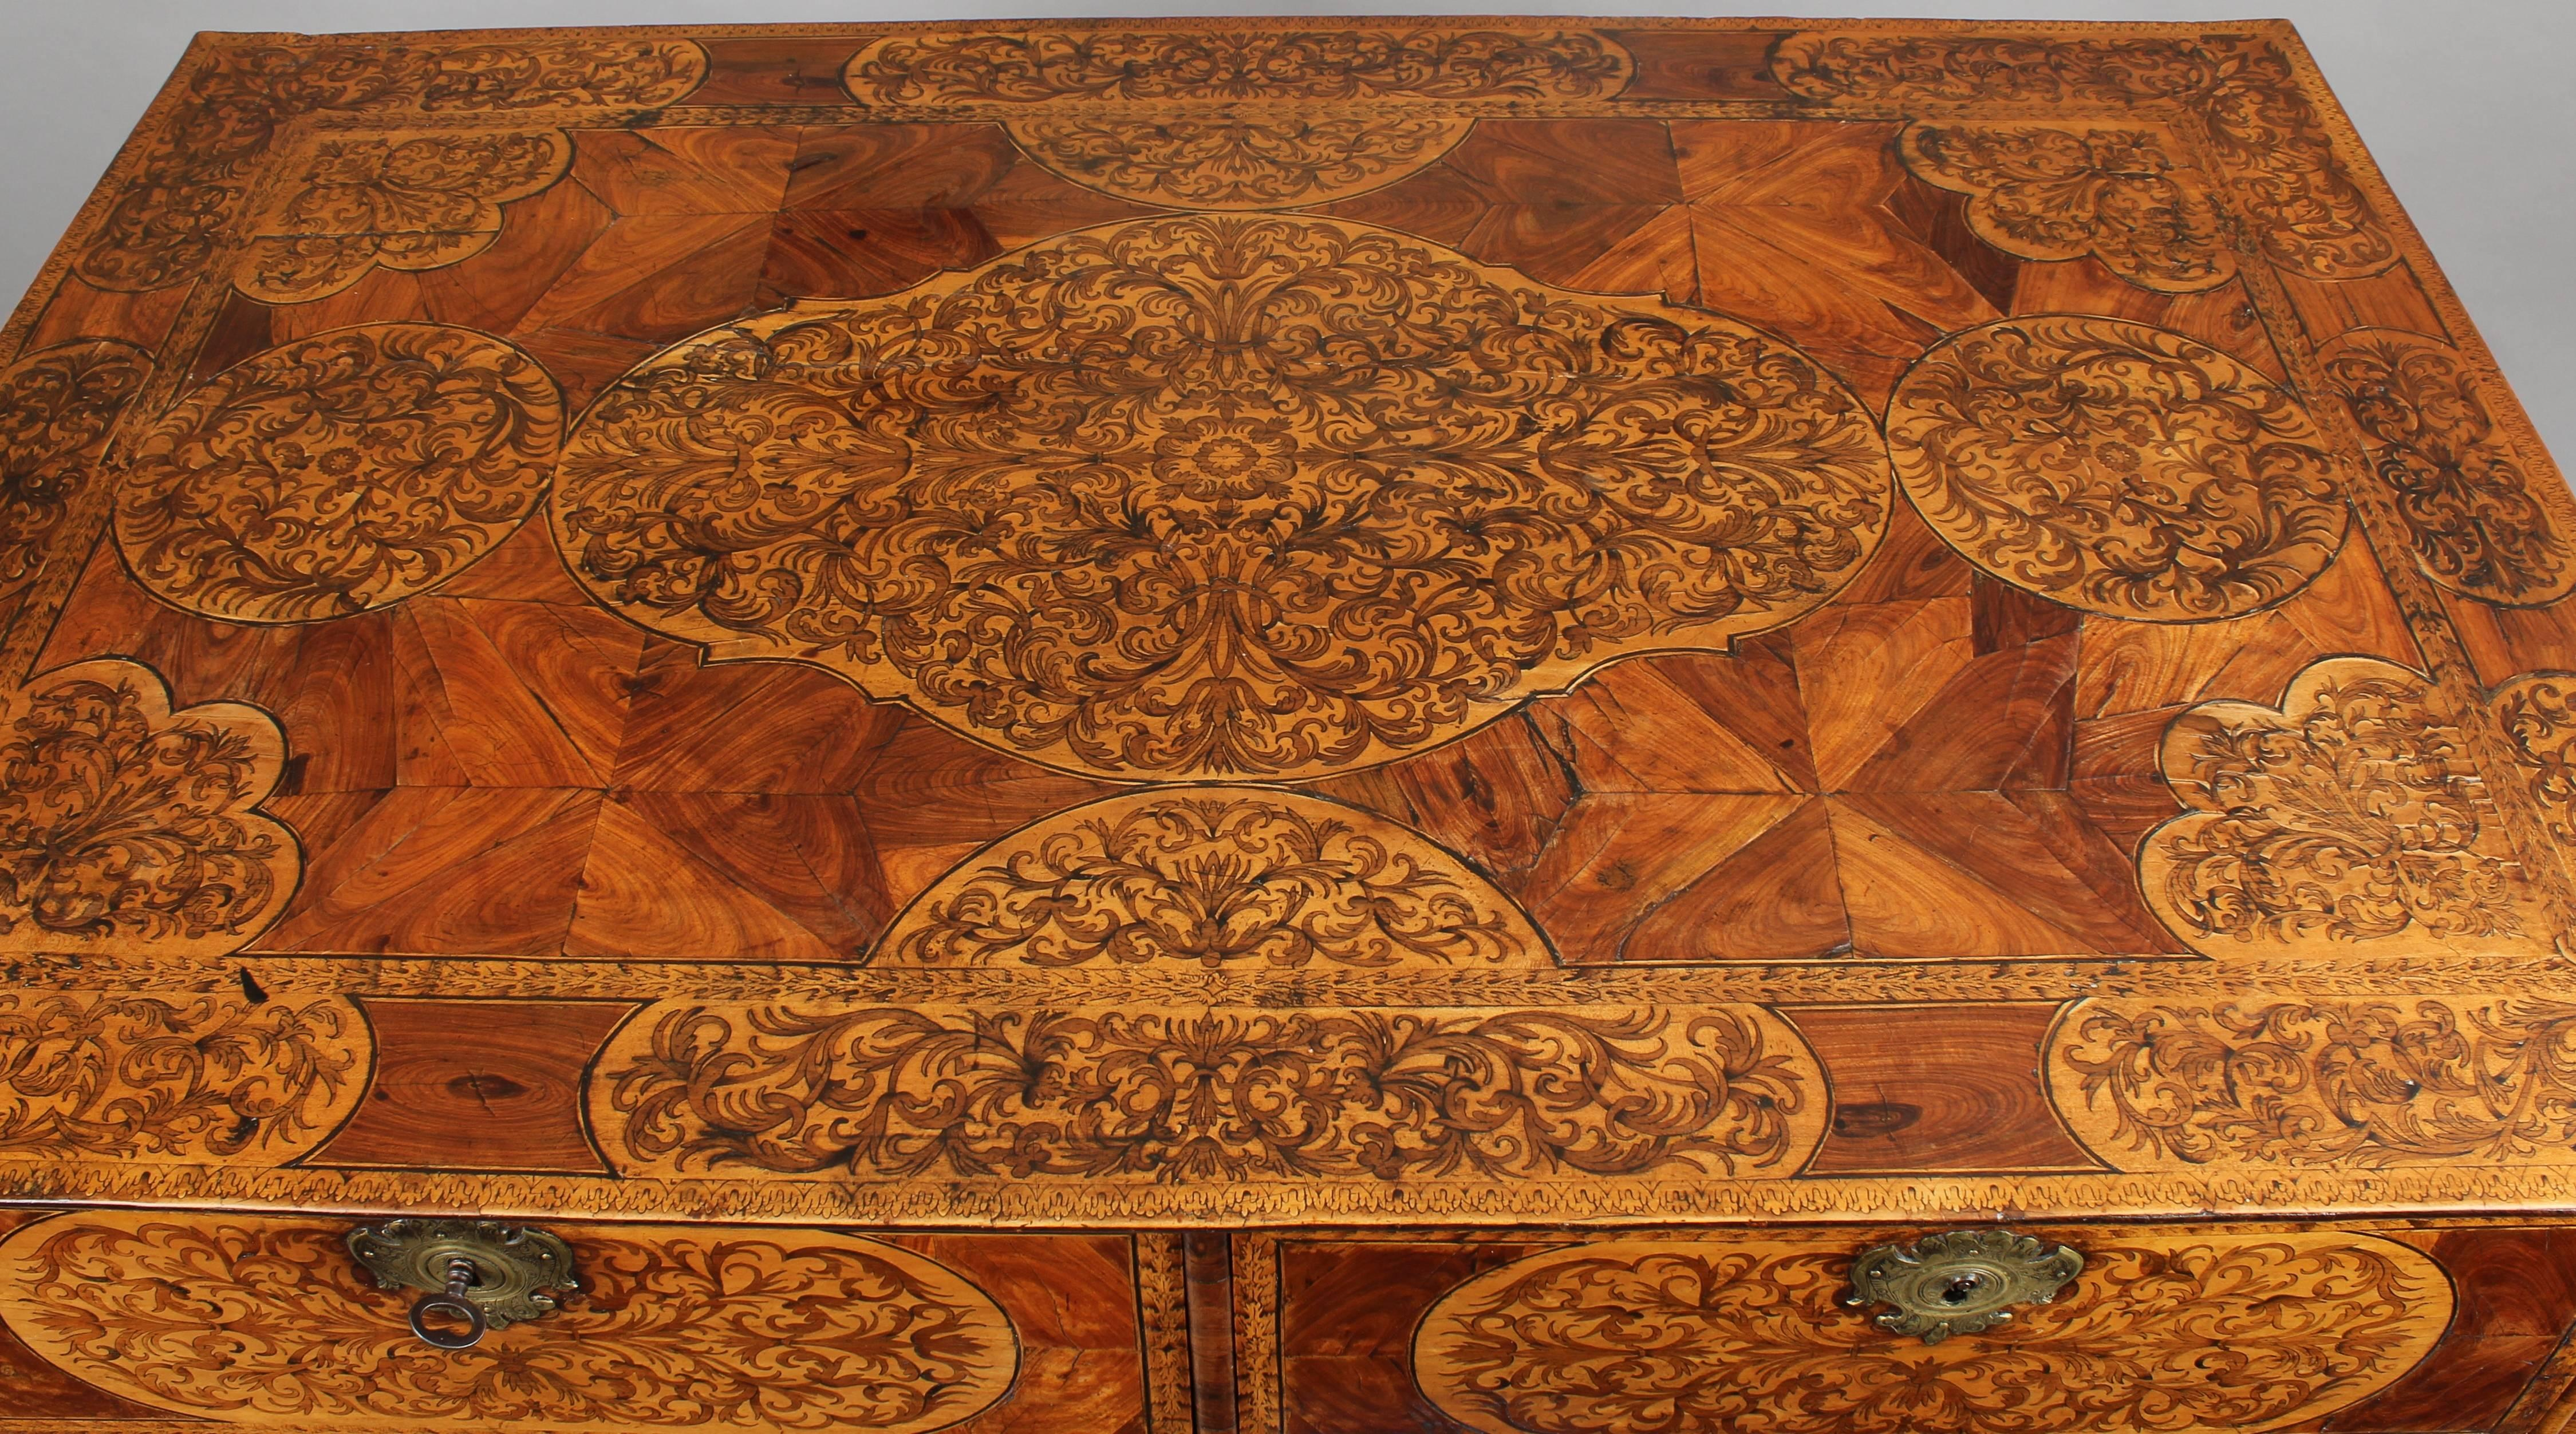 Exceptionally Fine William & Mary Period Chest on Stand